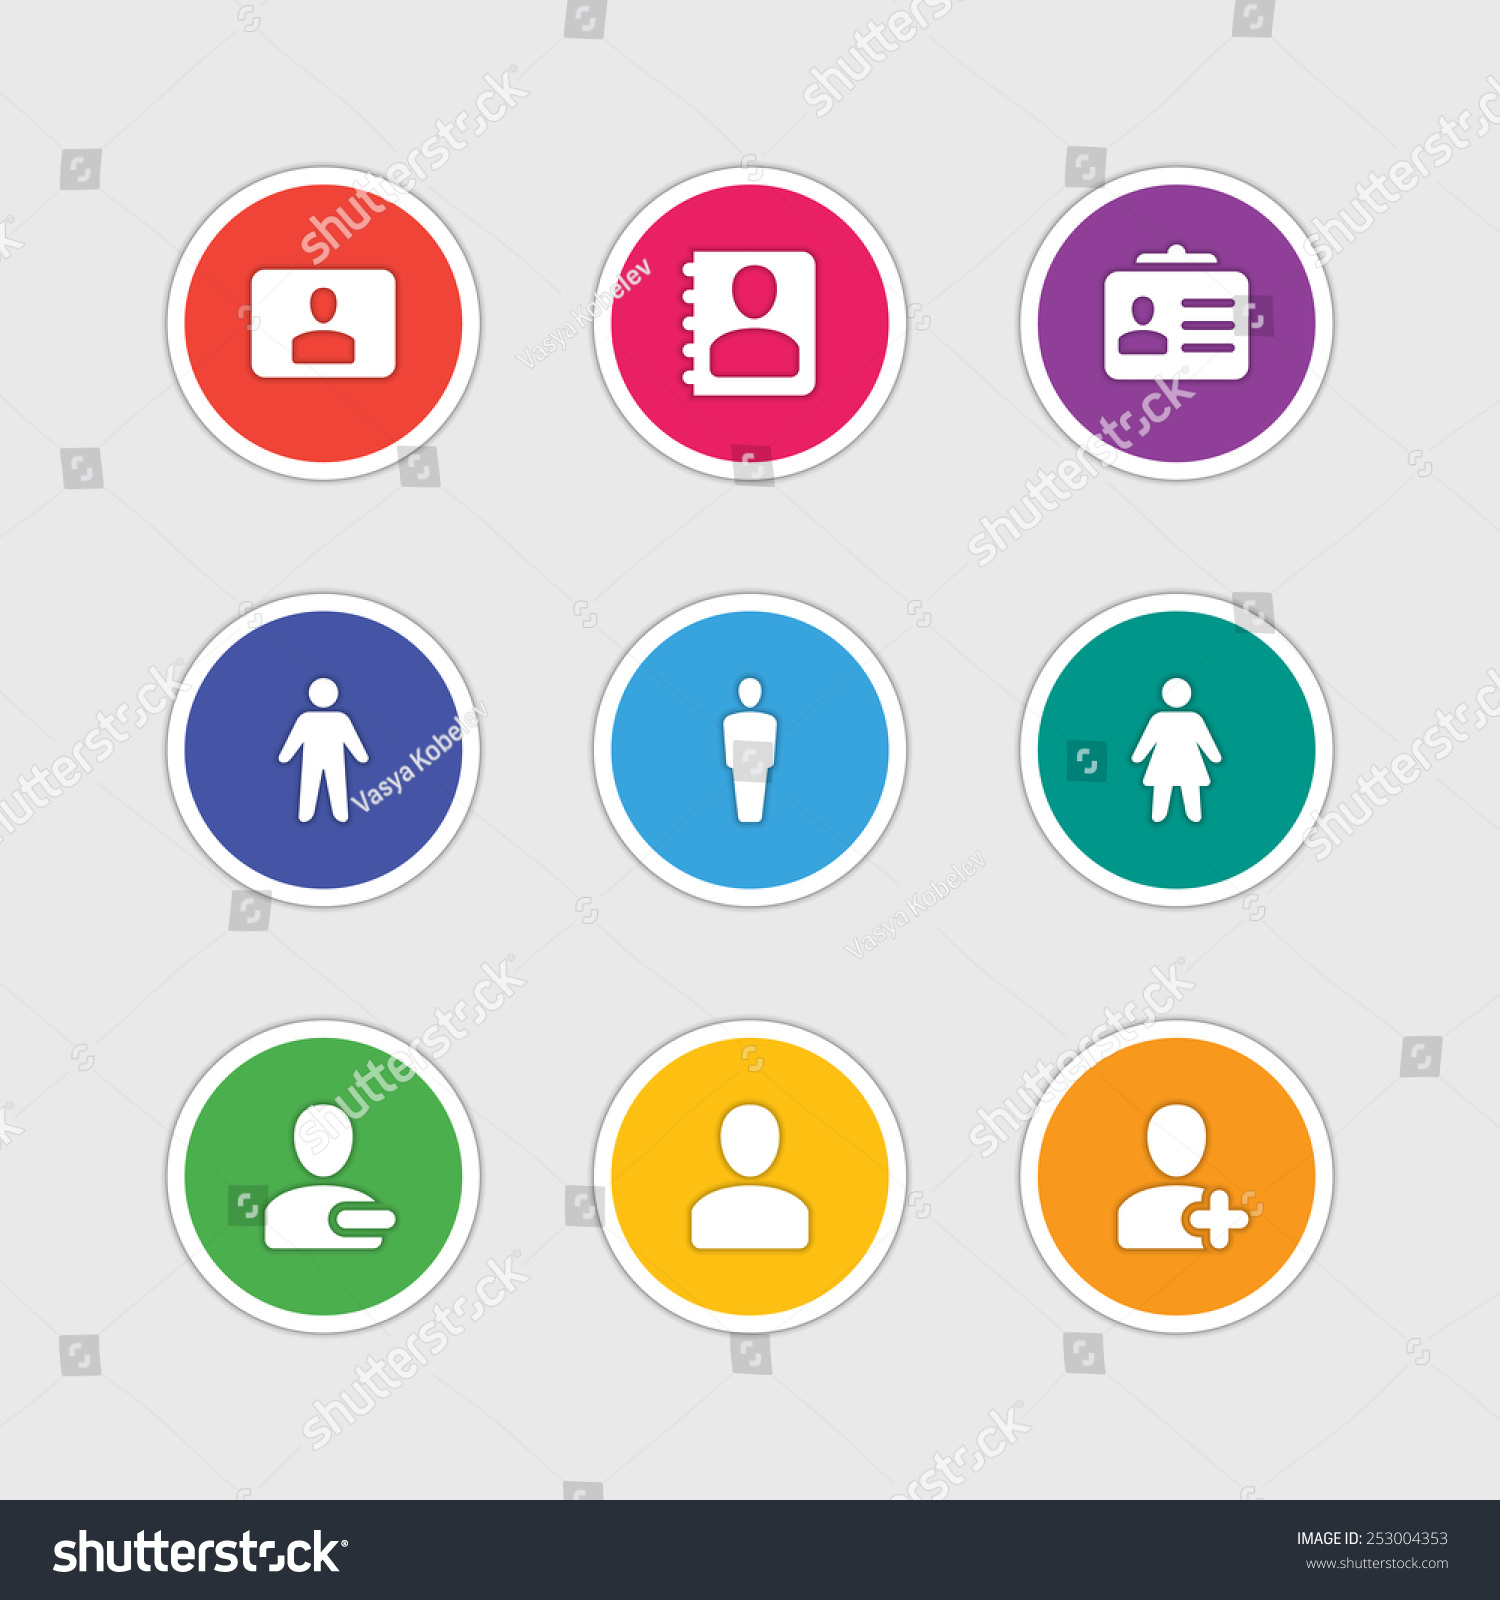 Material Design Style Icons Vector Sign Stock Vector Royalty Free